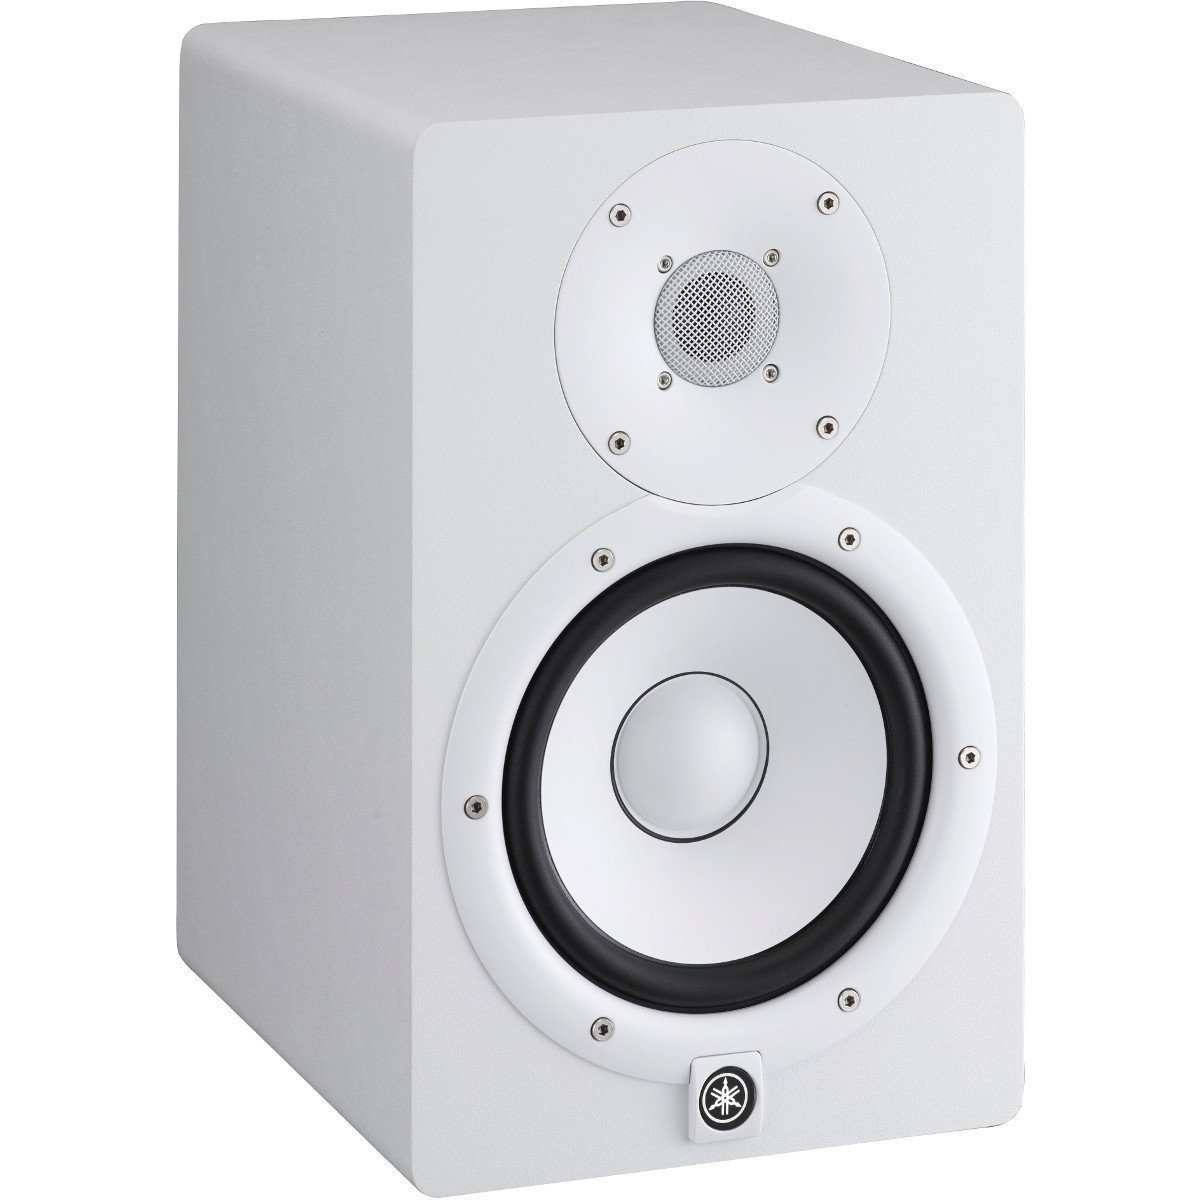 yamaha hs7 active studio monitors single white rockbottom music. Black Bedroom Furniture Sets. Home Design Ideas